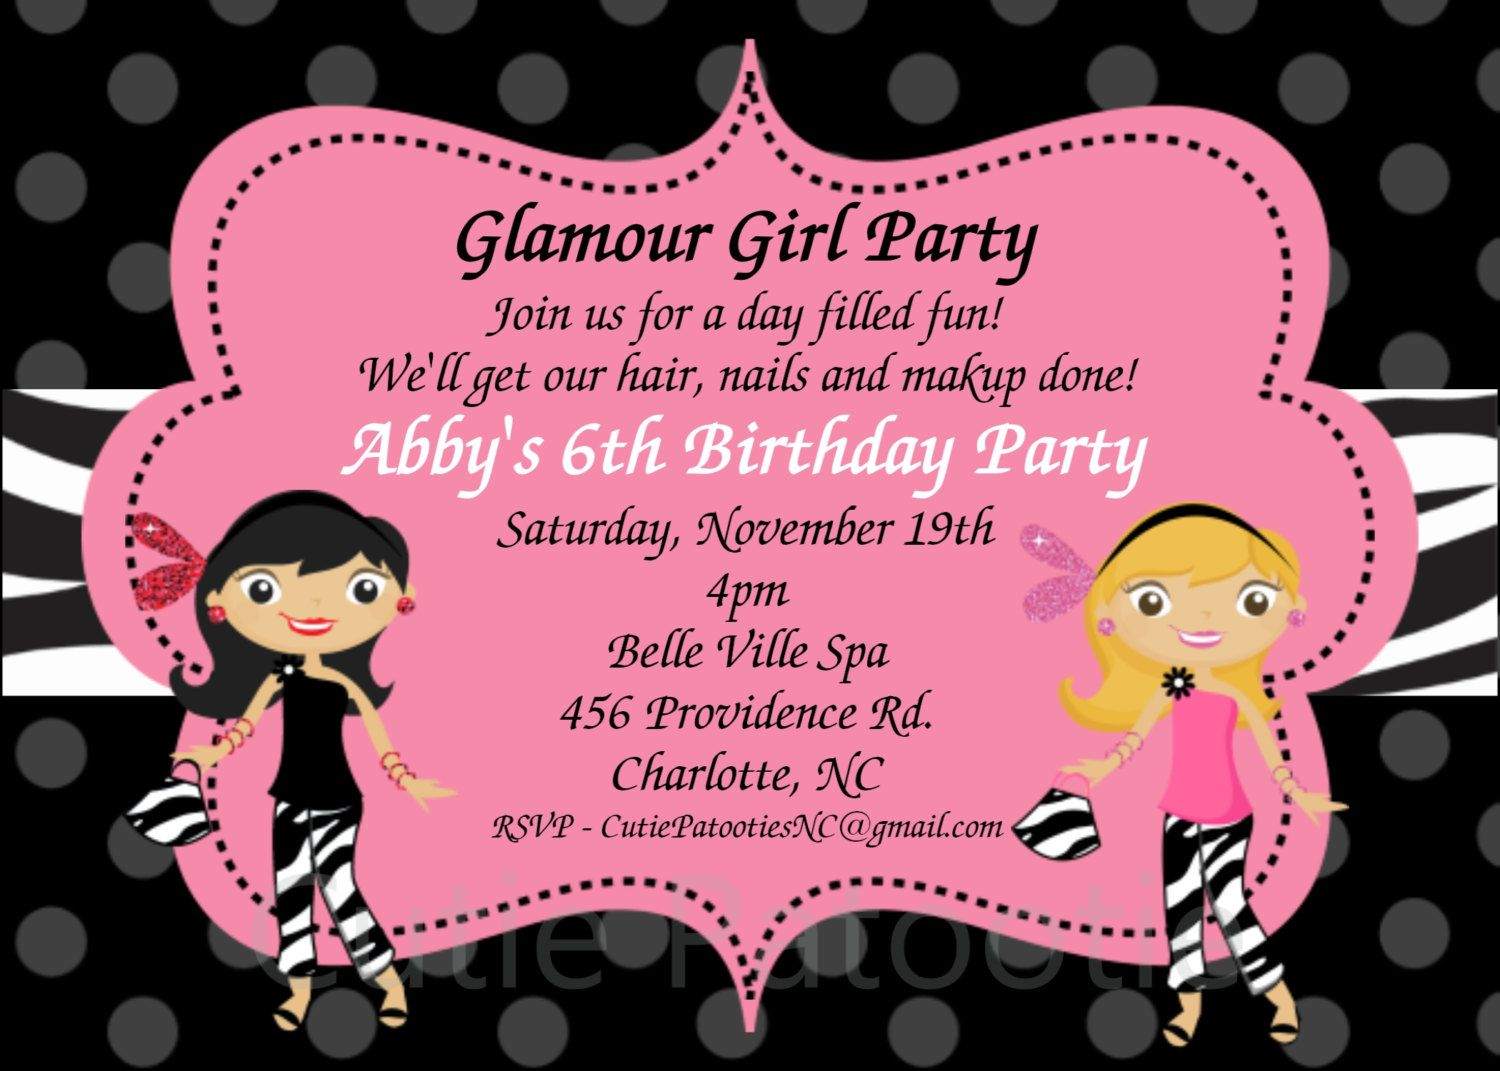 Invitation wording | Glam Girl Party | Pinterest | Invitation ...